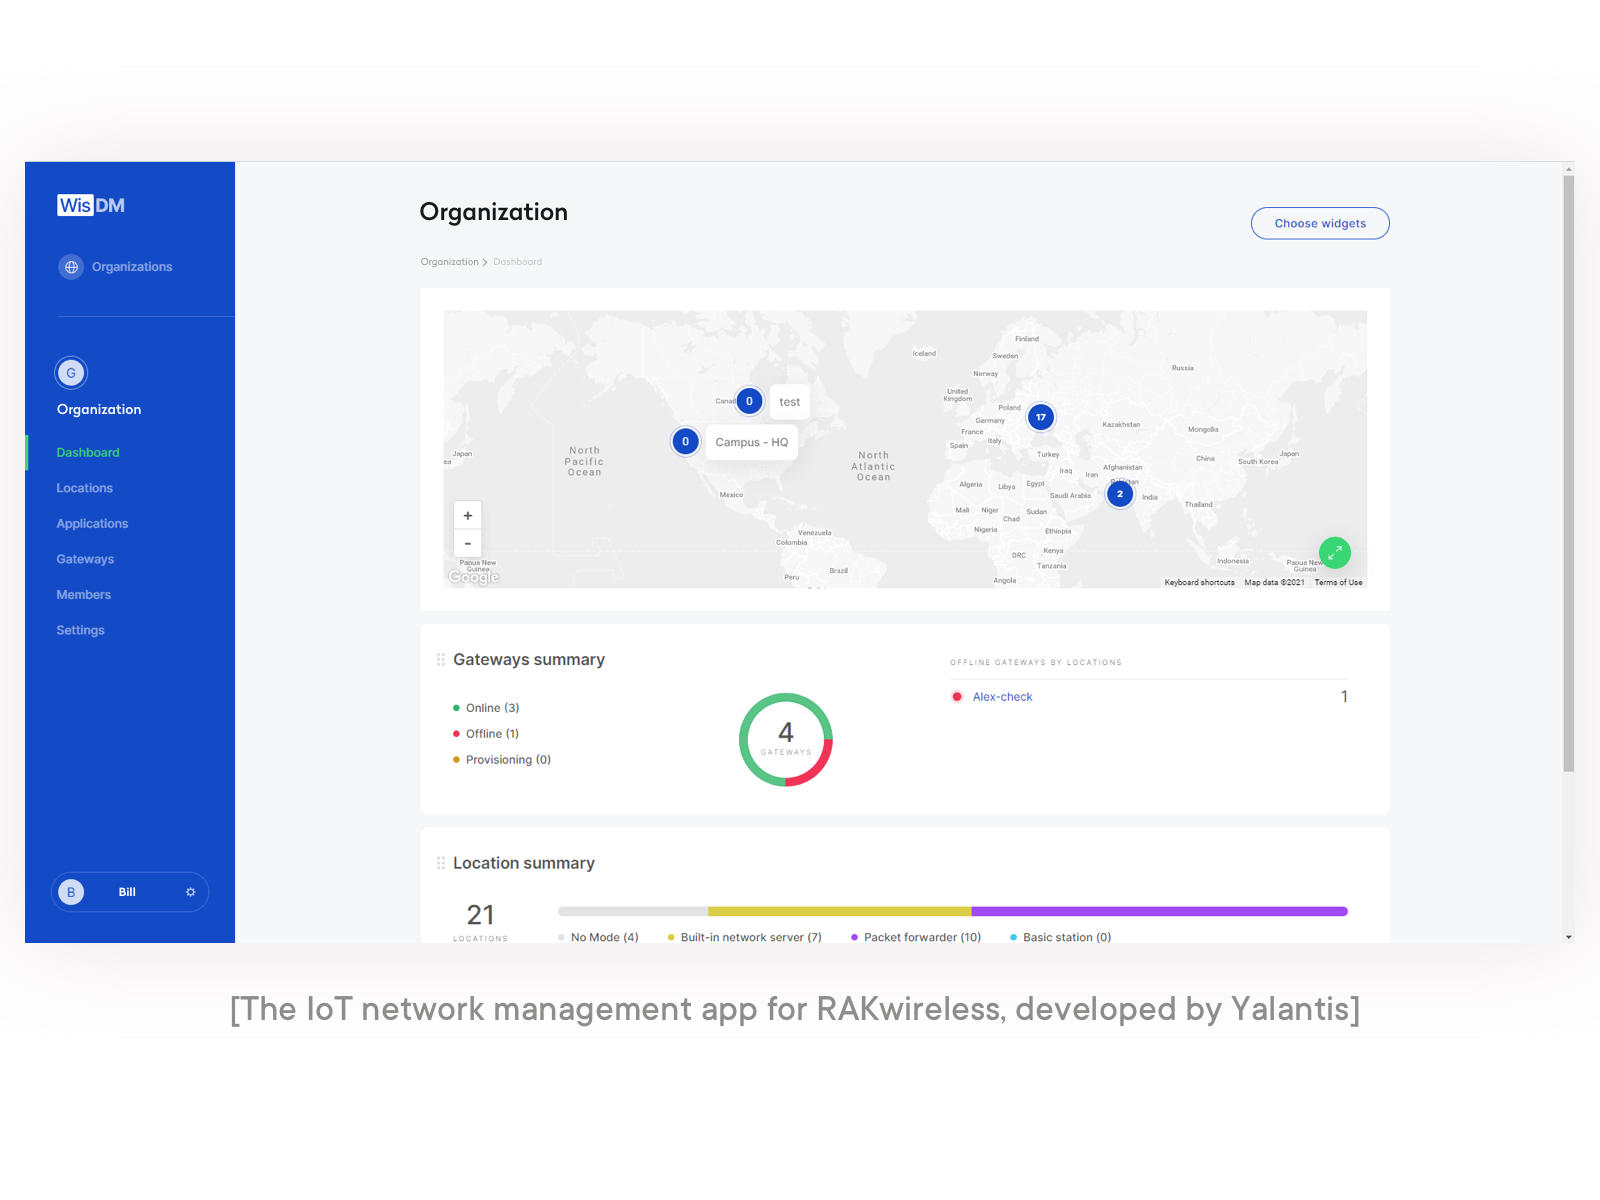 the iot network management app for rakwireless developed by yalantis